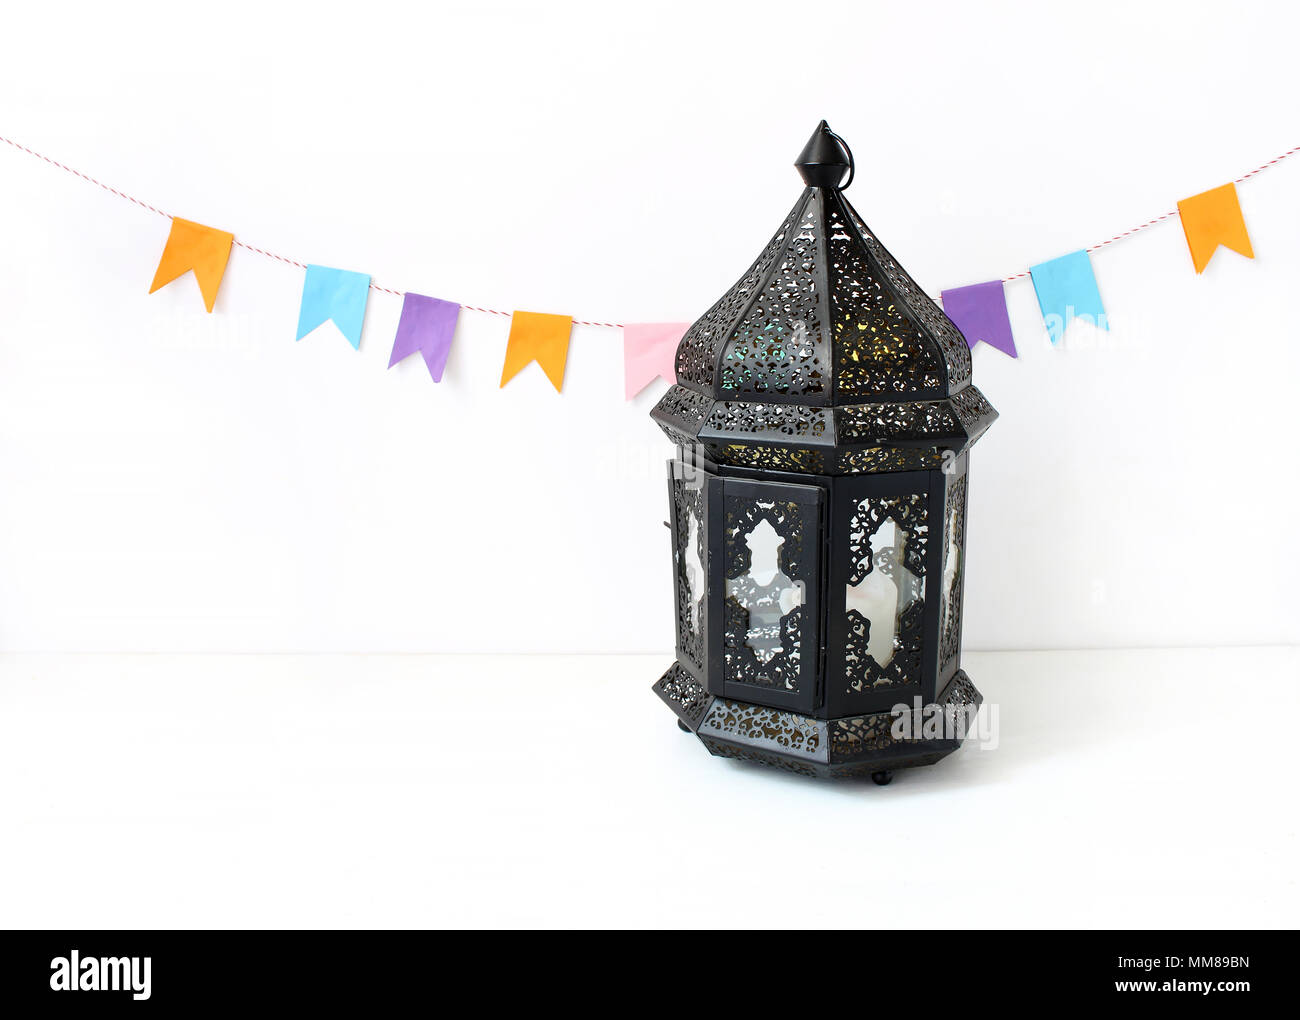 Good Night Sky Party Eid Al-Fitr Decorations - ornamental-dark-moroccan-arabic-lantern-on-the-white-table-party-decoration-string-of-colorful-paper-flags-greeting-card-for-muslim-holiday-ramadan-kareem-festive-background-MM89BN  Trends_484150 .jpg